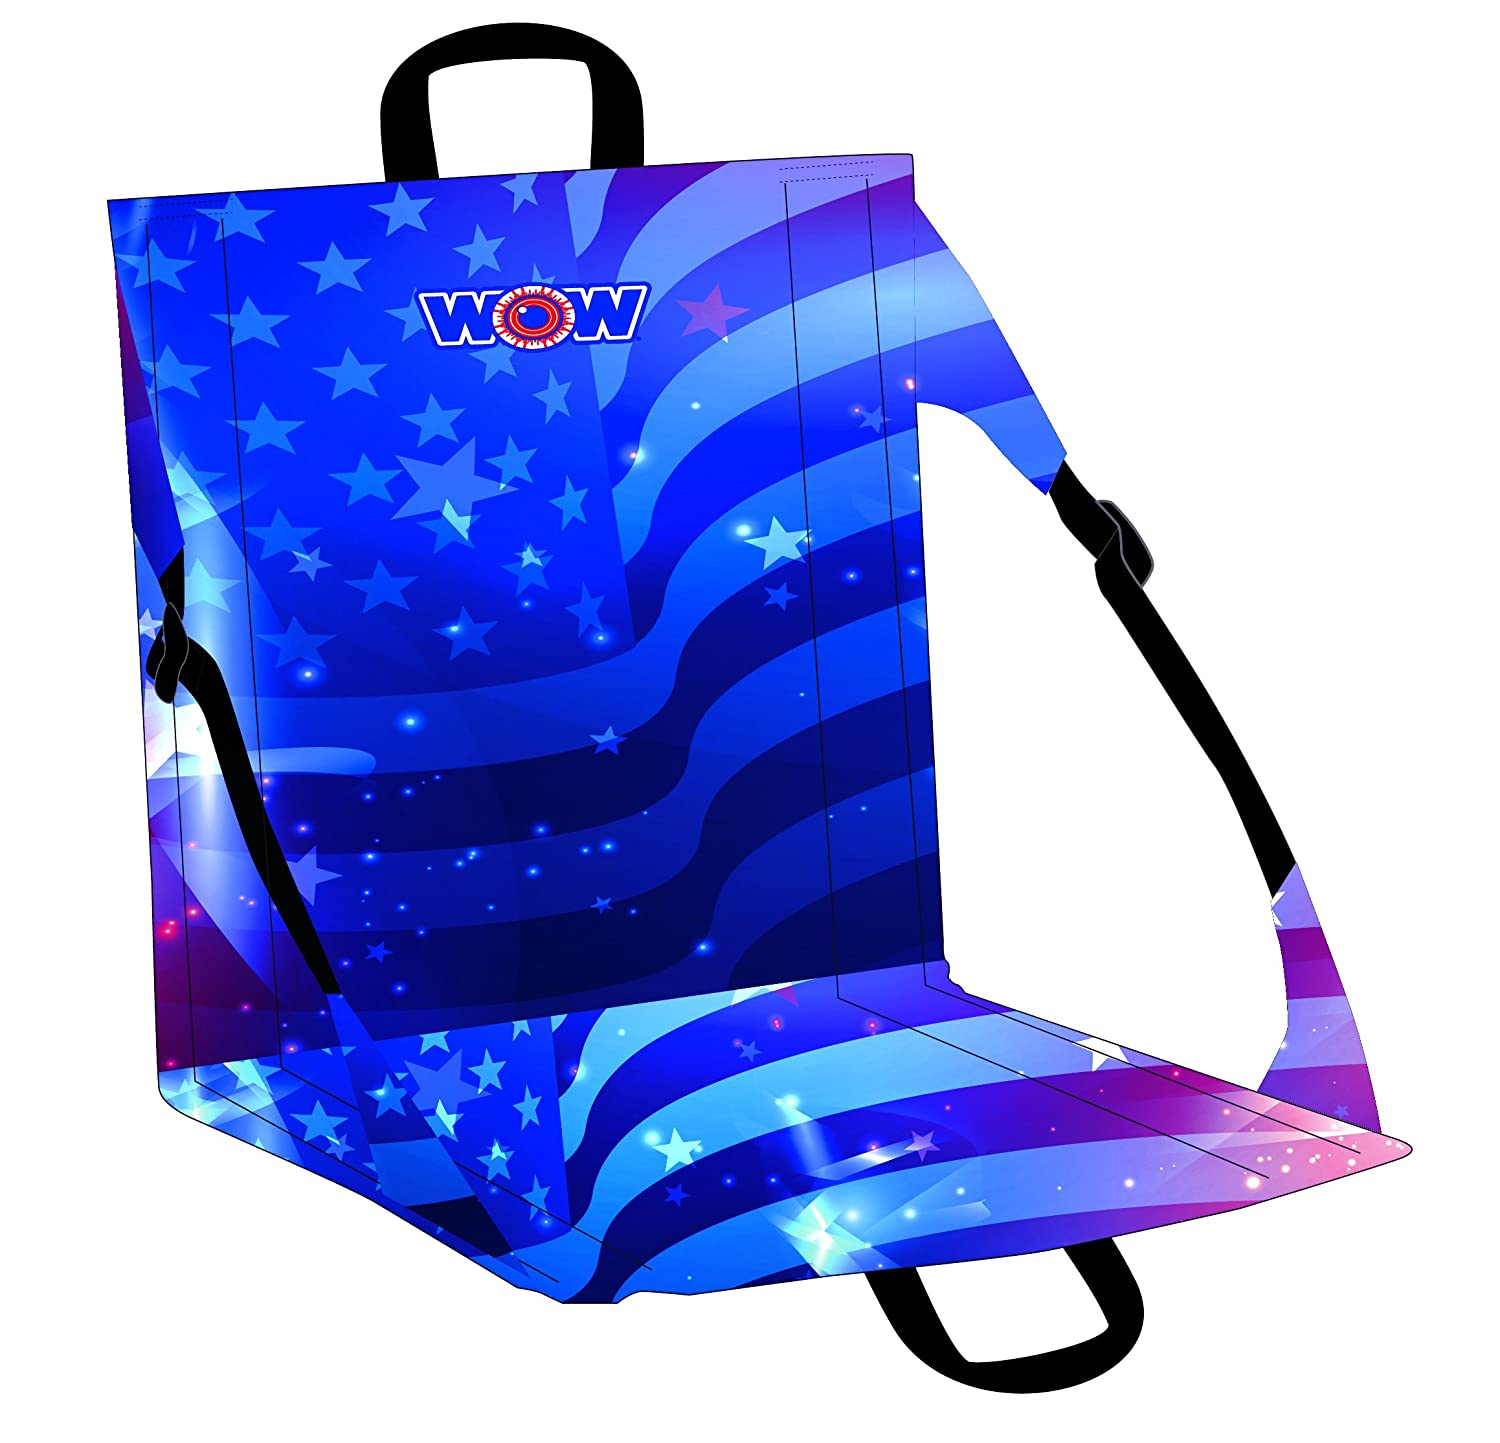 Adjustable and Lightweight Beach to Stadium Seat Collapsible WoW World of Watersports Damp Proof Fun Patterns Americana Flag 18-5510